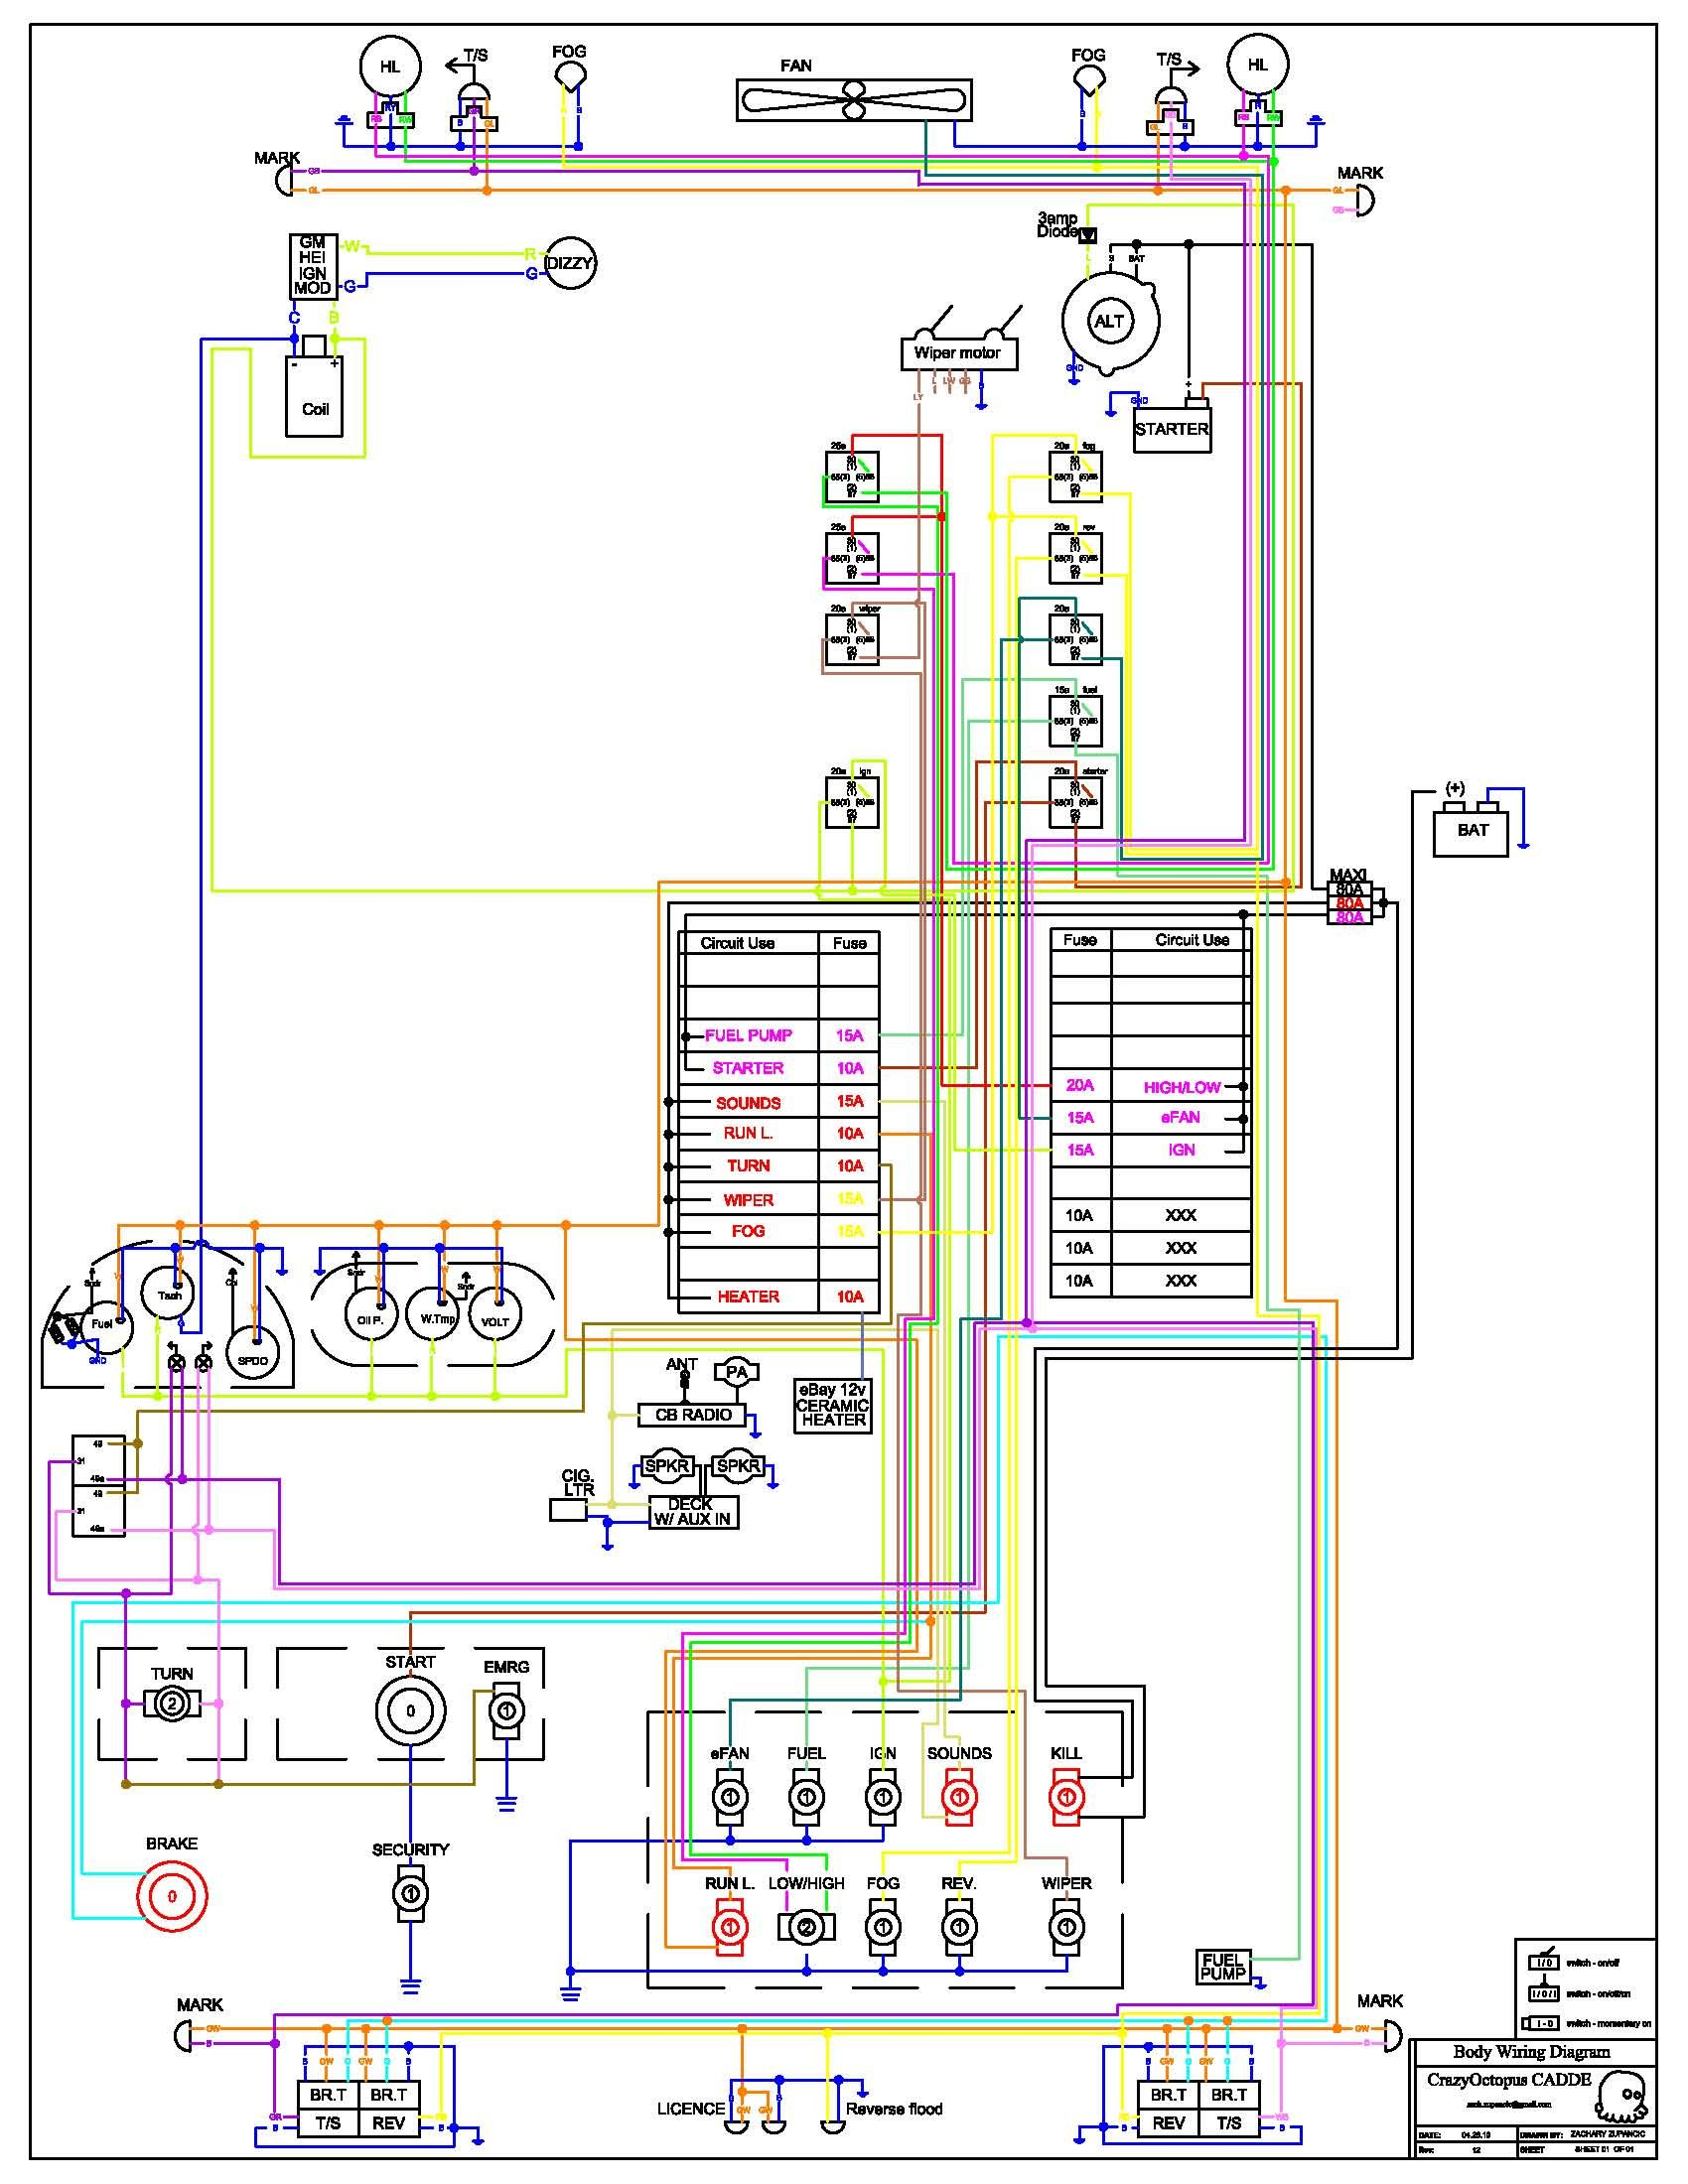 Race car wiring diagrams diagram pinterest diagram and cars race car wiring diagrams pooptronica